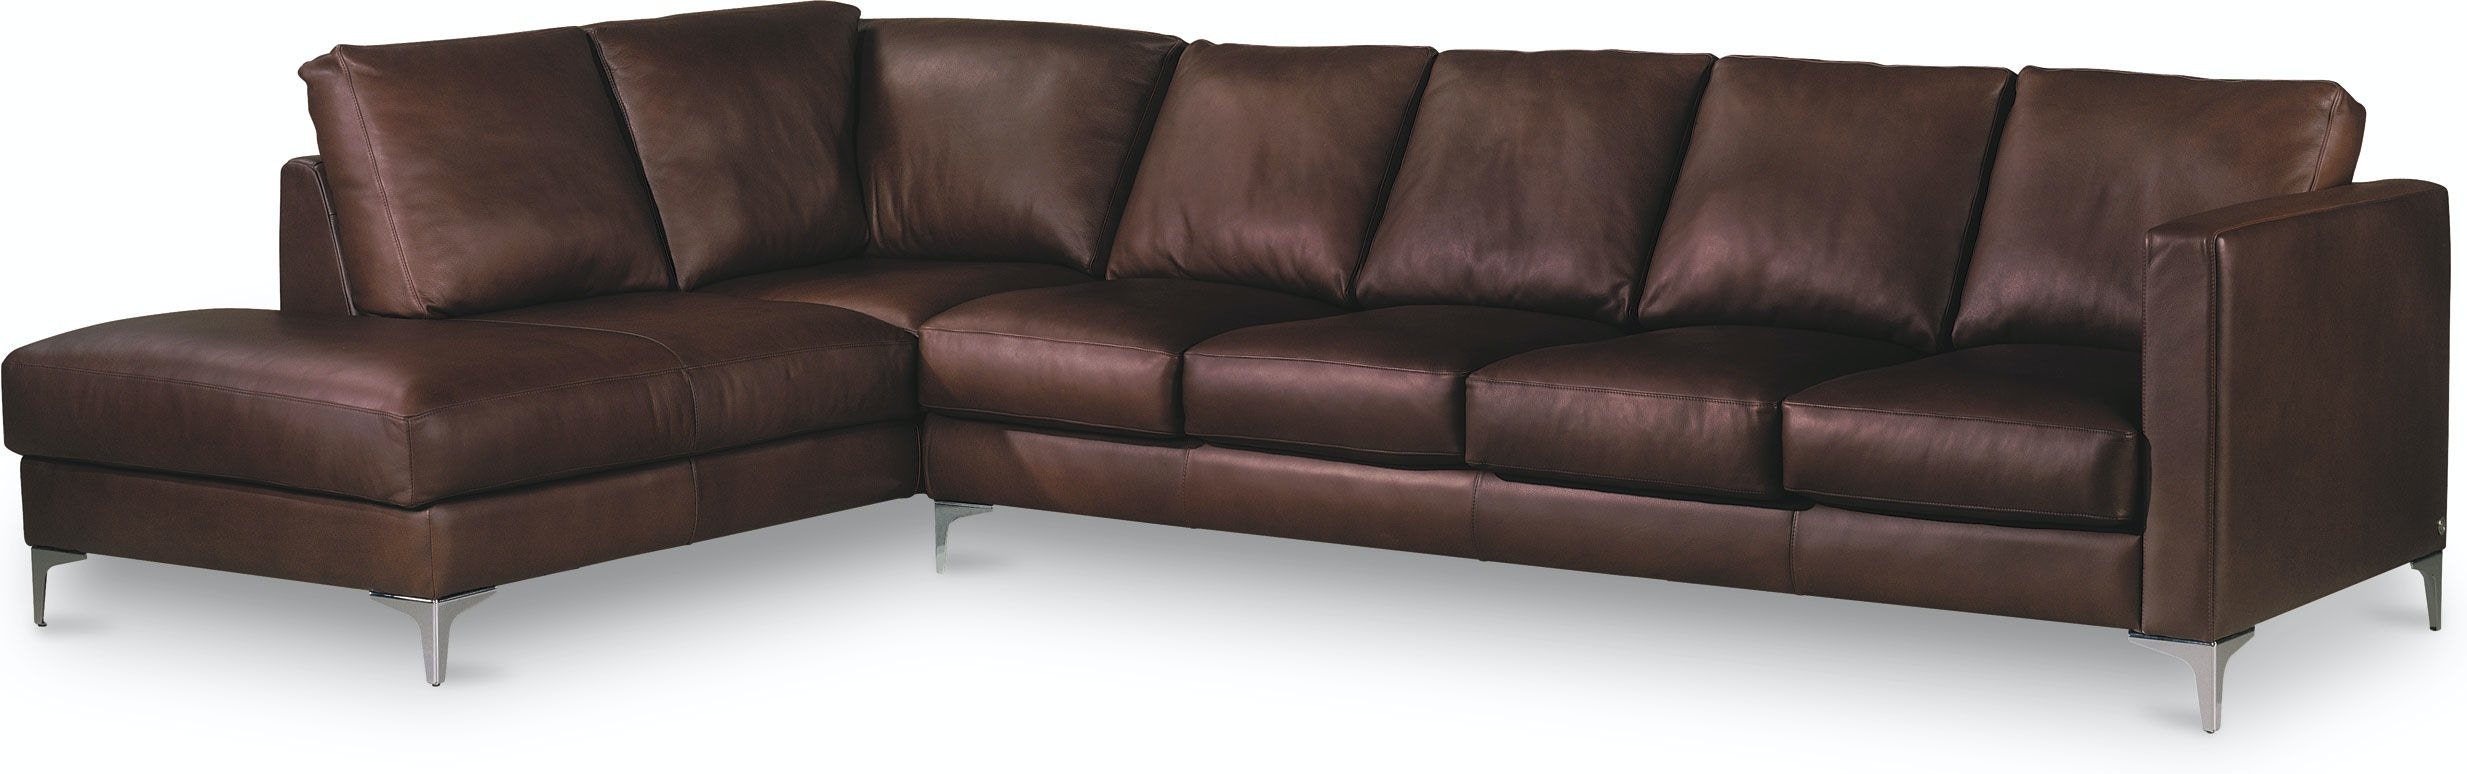 Charmant American Leather Kendall Sectional Kendall Sectional